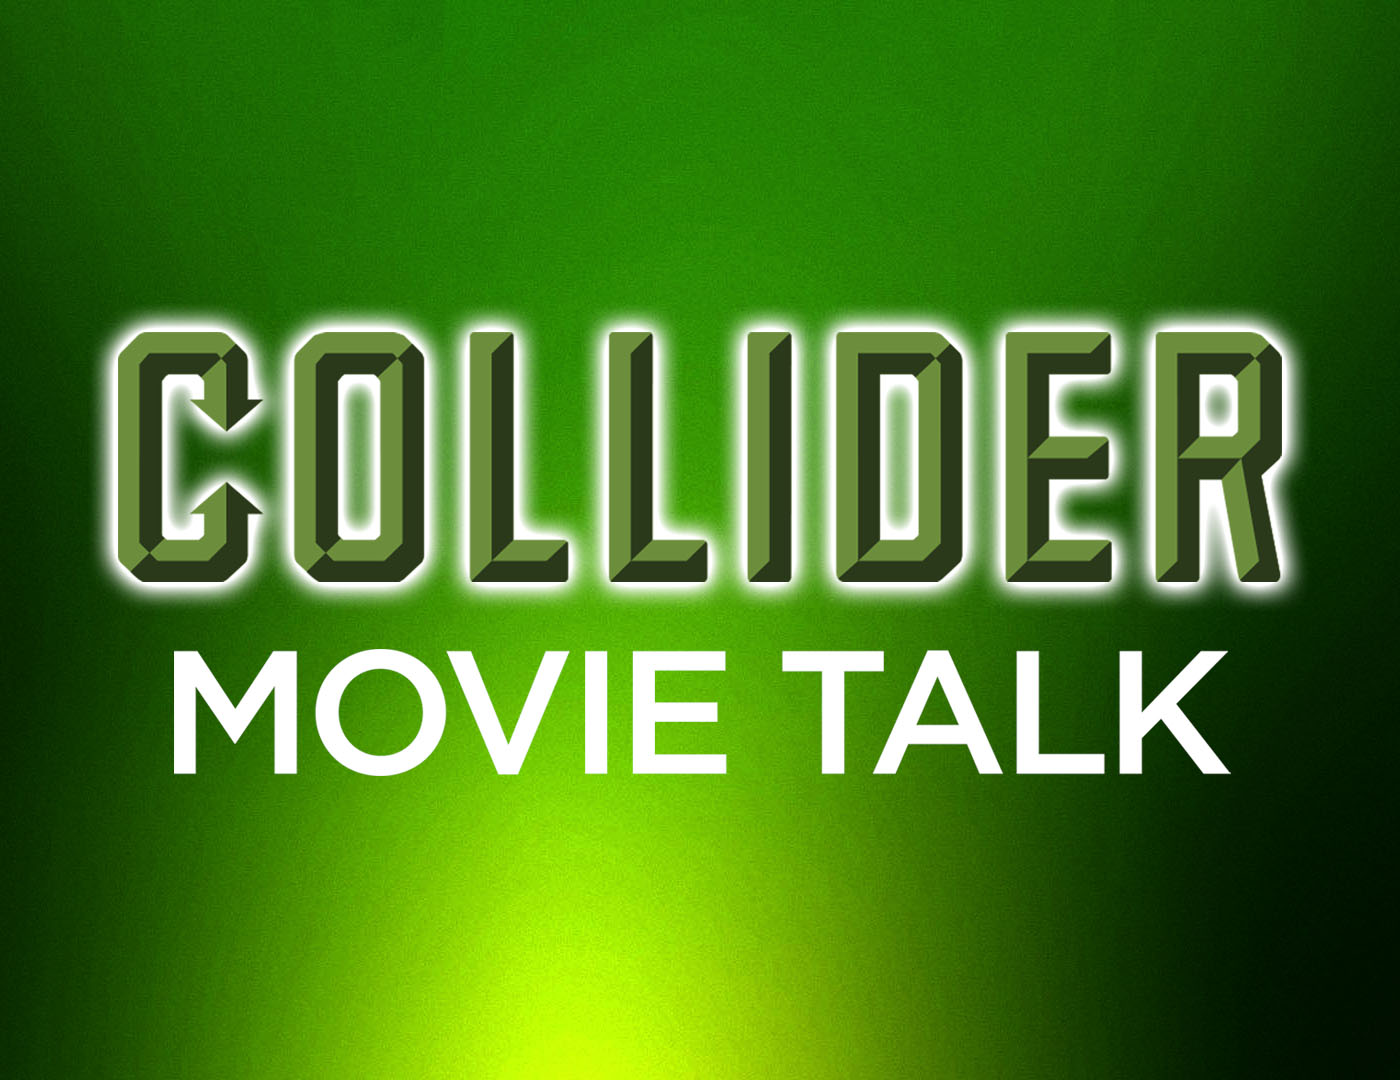 Collider Movie Talk - Batman V Superman Fallout Leads To DC Shakeup, 2nd Ghostbusters Trailer